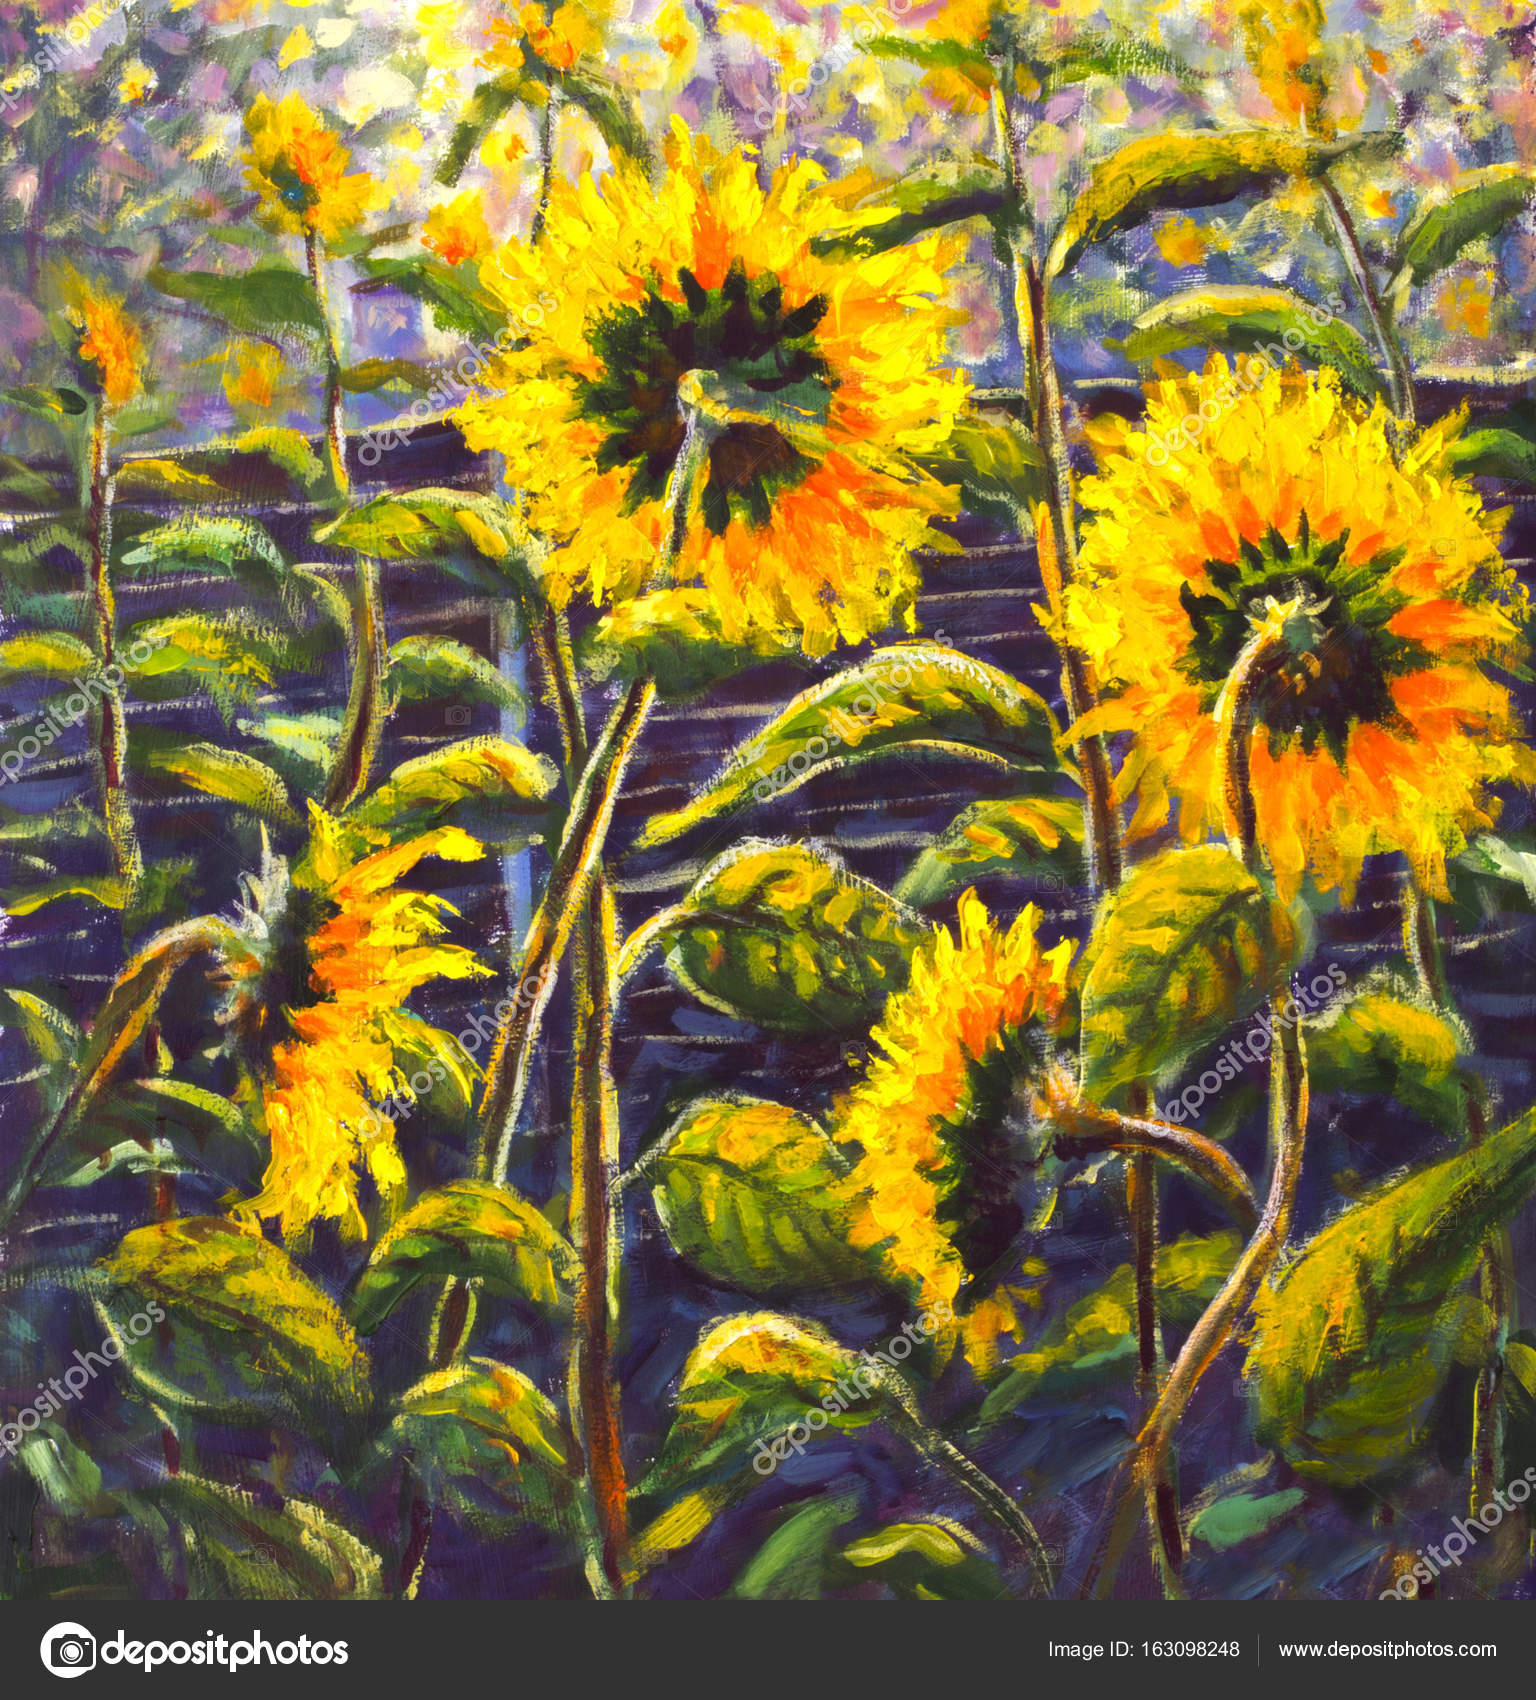 Sunflowers Acrylic  Oil painting Original handpainted art of     Sunflowers Acrylic  Oil painting Original handpainted art of sunflower  flowers  beautiful gold sunflowers in